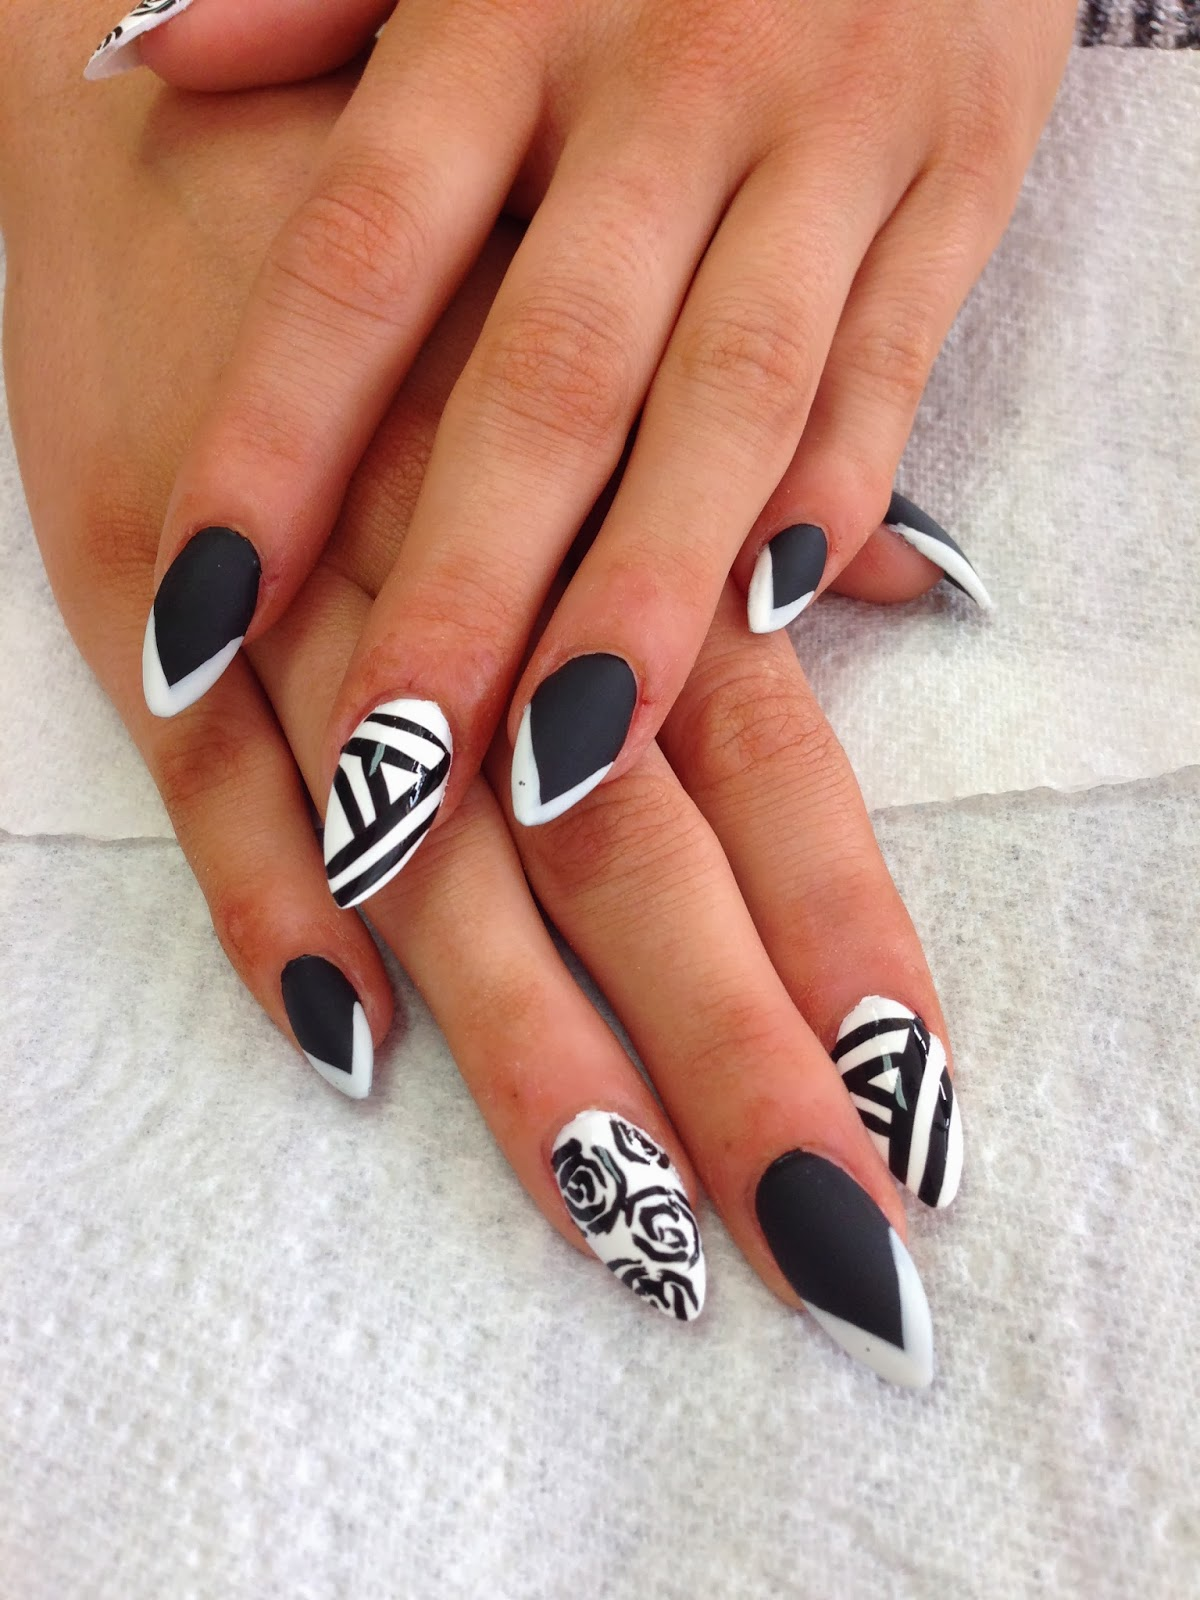 Kaycie kyle black white this design was base on glamsusie nail art from instgram she is a great nail artist her designs are feminine and pretty with lovely floral designs prinsesfo Choice Image